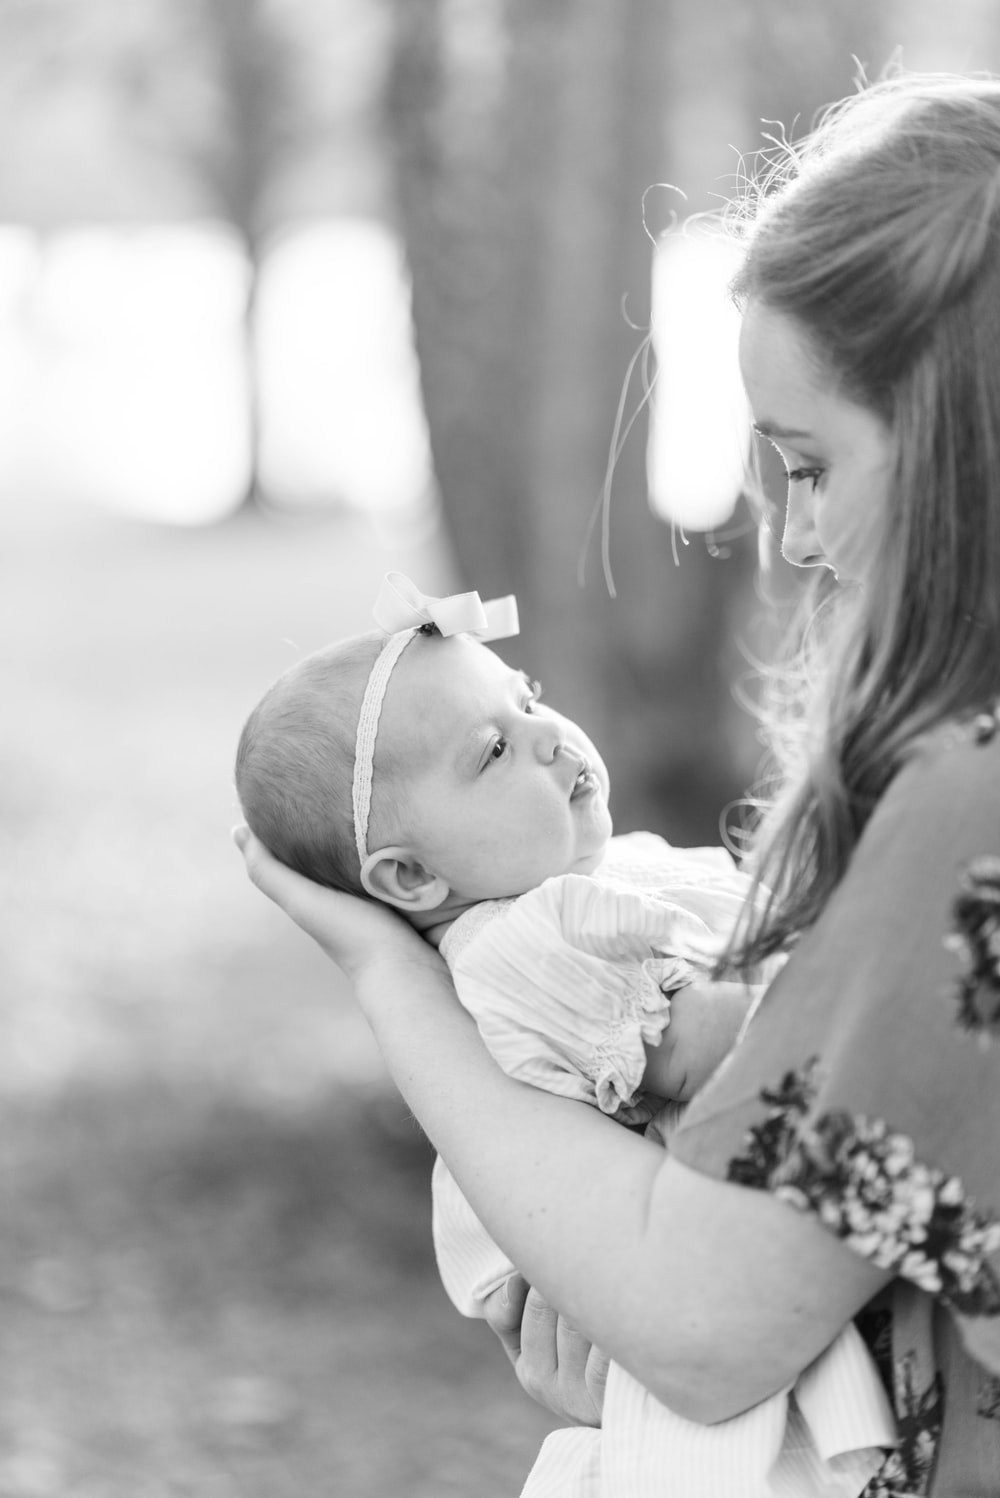 greyscale selective focus photo of woman carrying baby